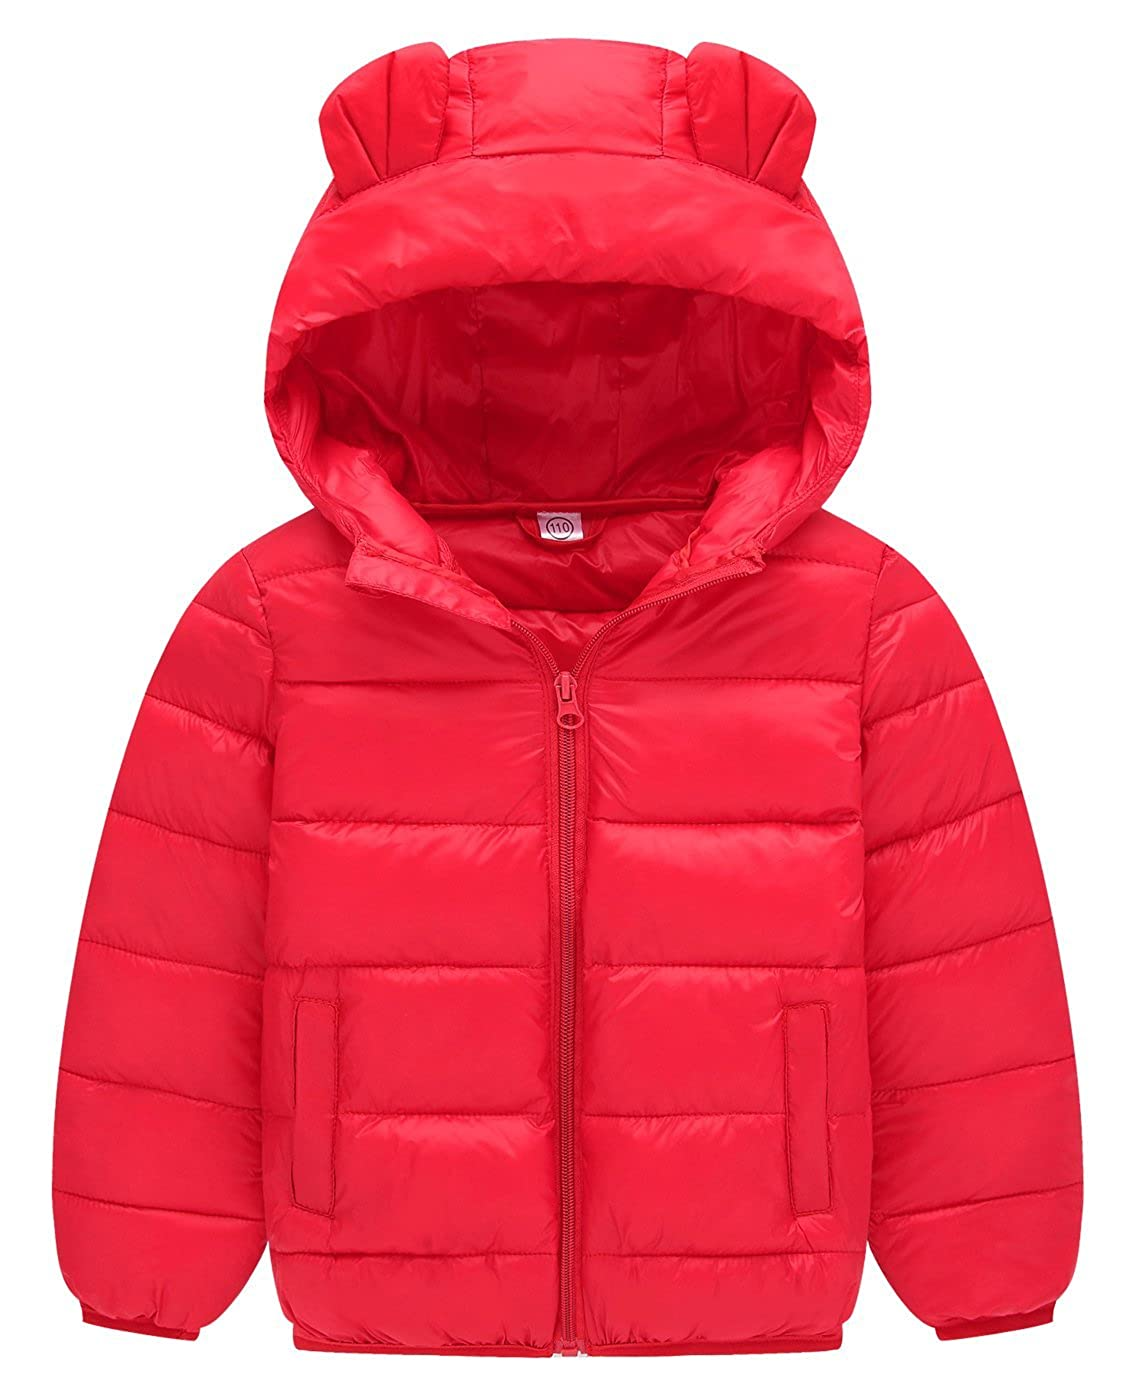 Girls Winter Coat Packable Puffy Padded Outerwear Hooded Jacket 2-7T Happy Cherry